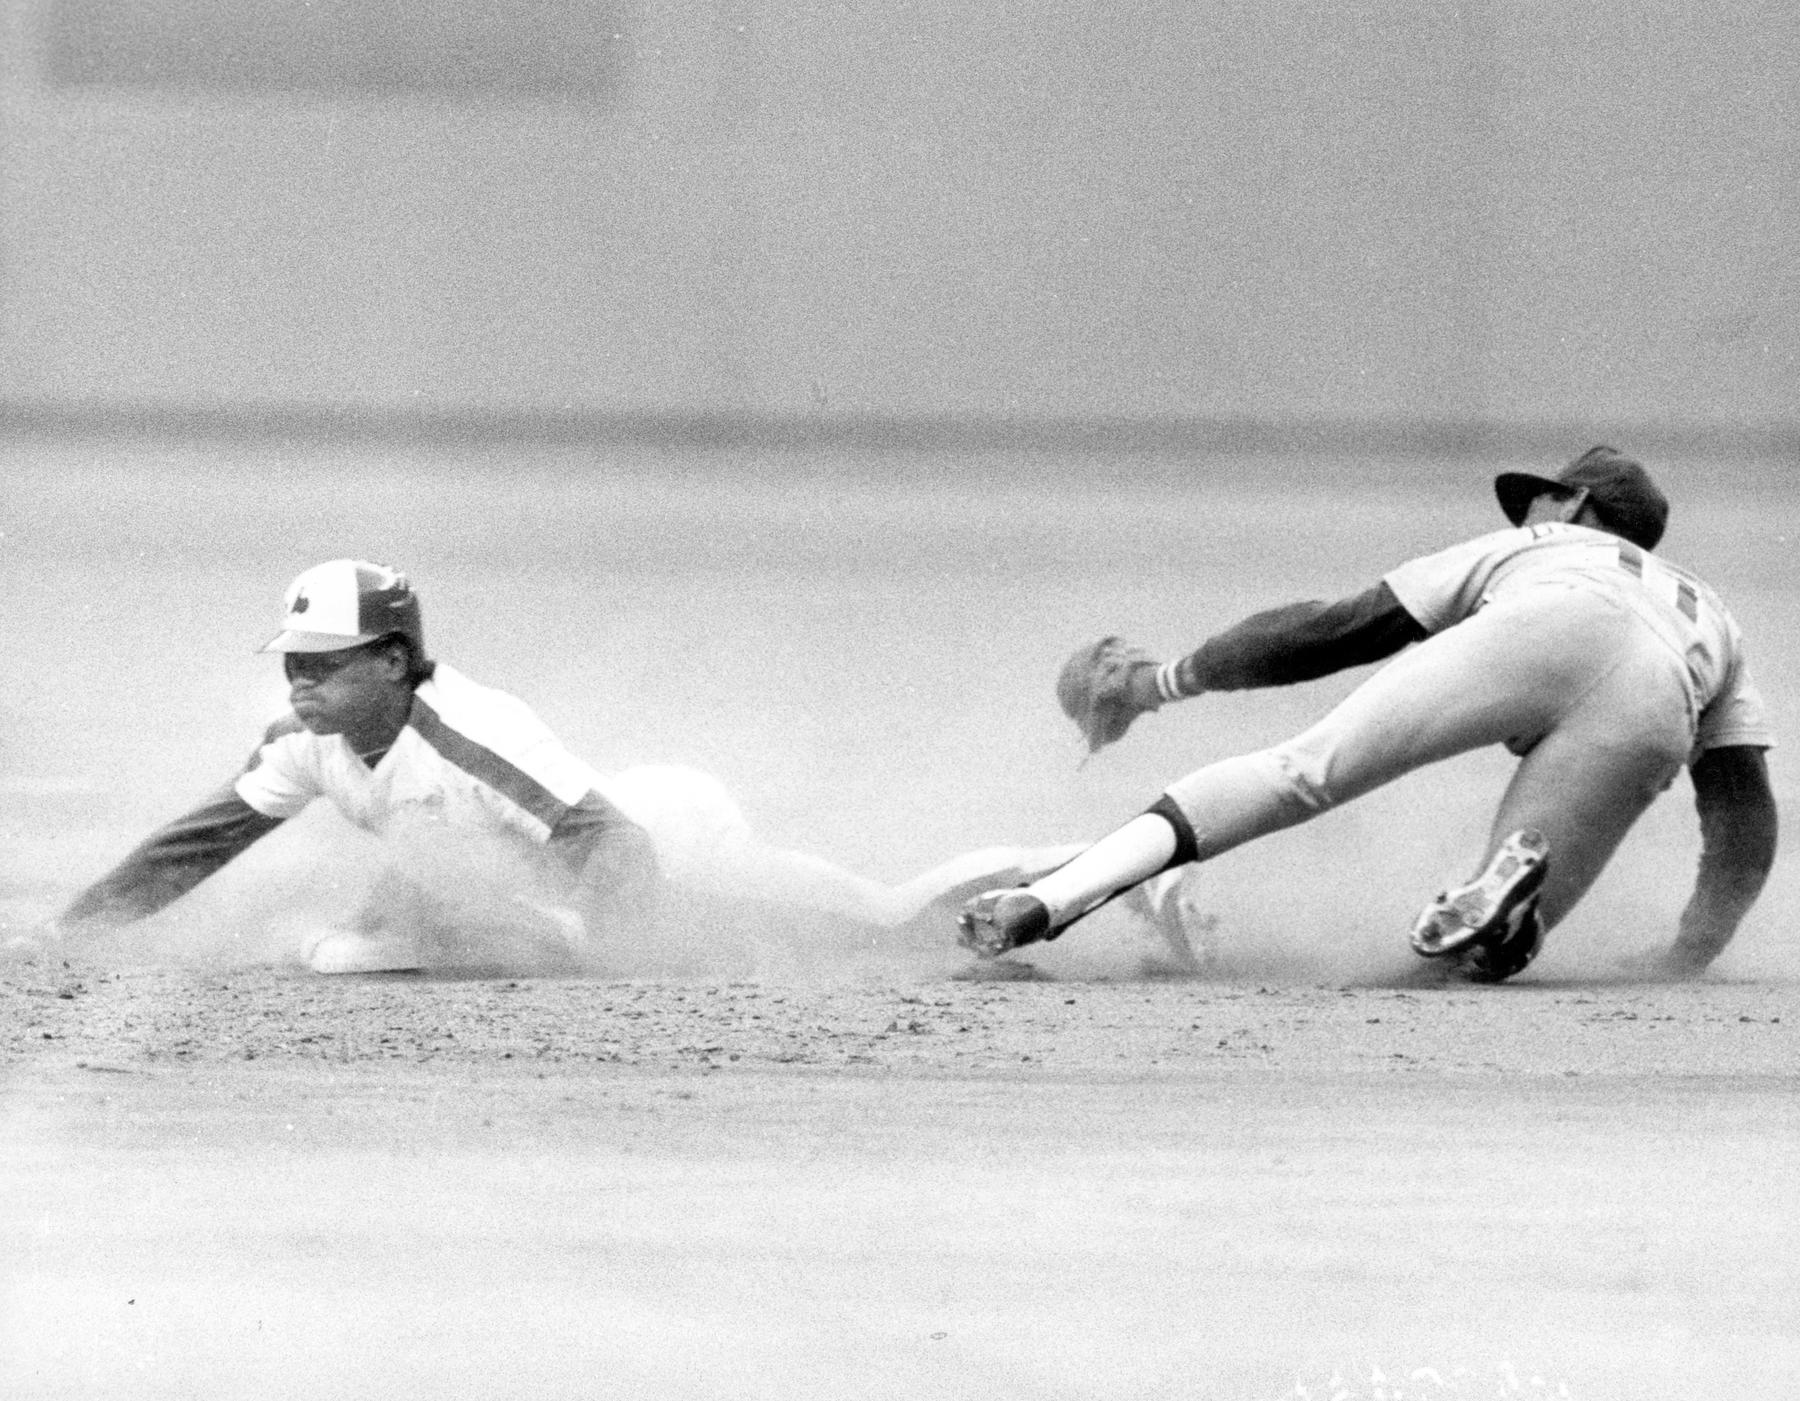 Tim Raines of the Montreal Expos sliding in safely after stealing a base. BL-1472.2002 (National Baseball Hall of Fame Library)